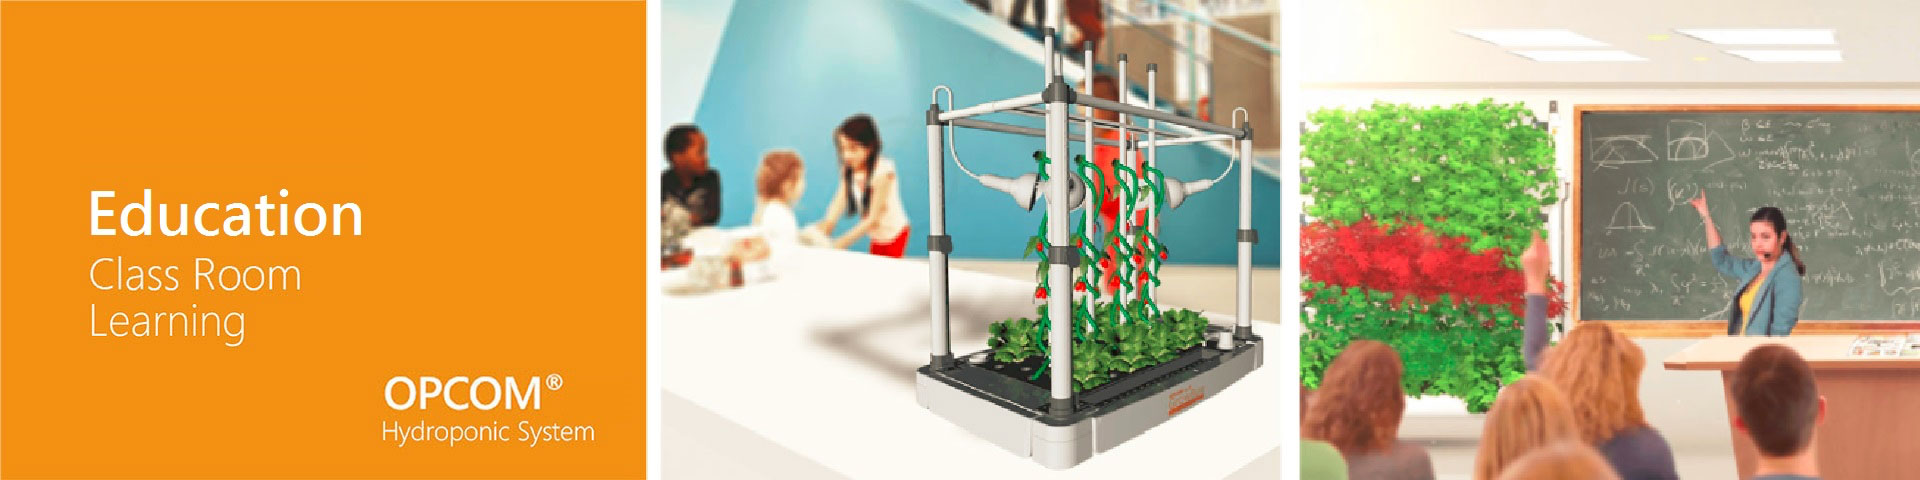 Application for School-Class Room, Hydroponic System